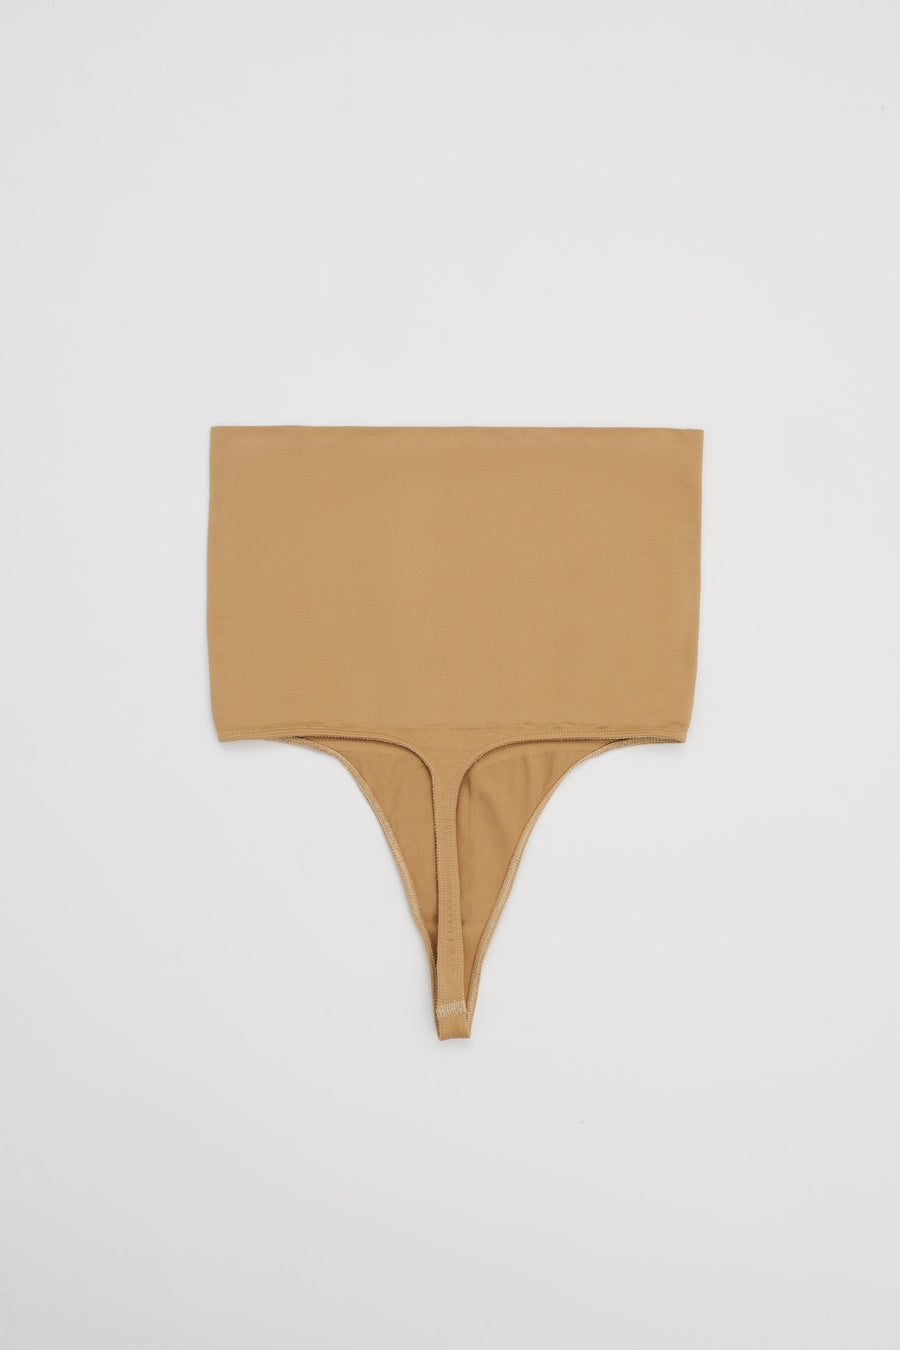 SUNRISE HIGH WAIST THONG SHAPER IN PANCAKE